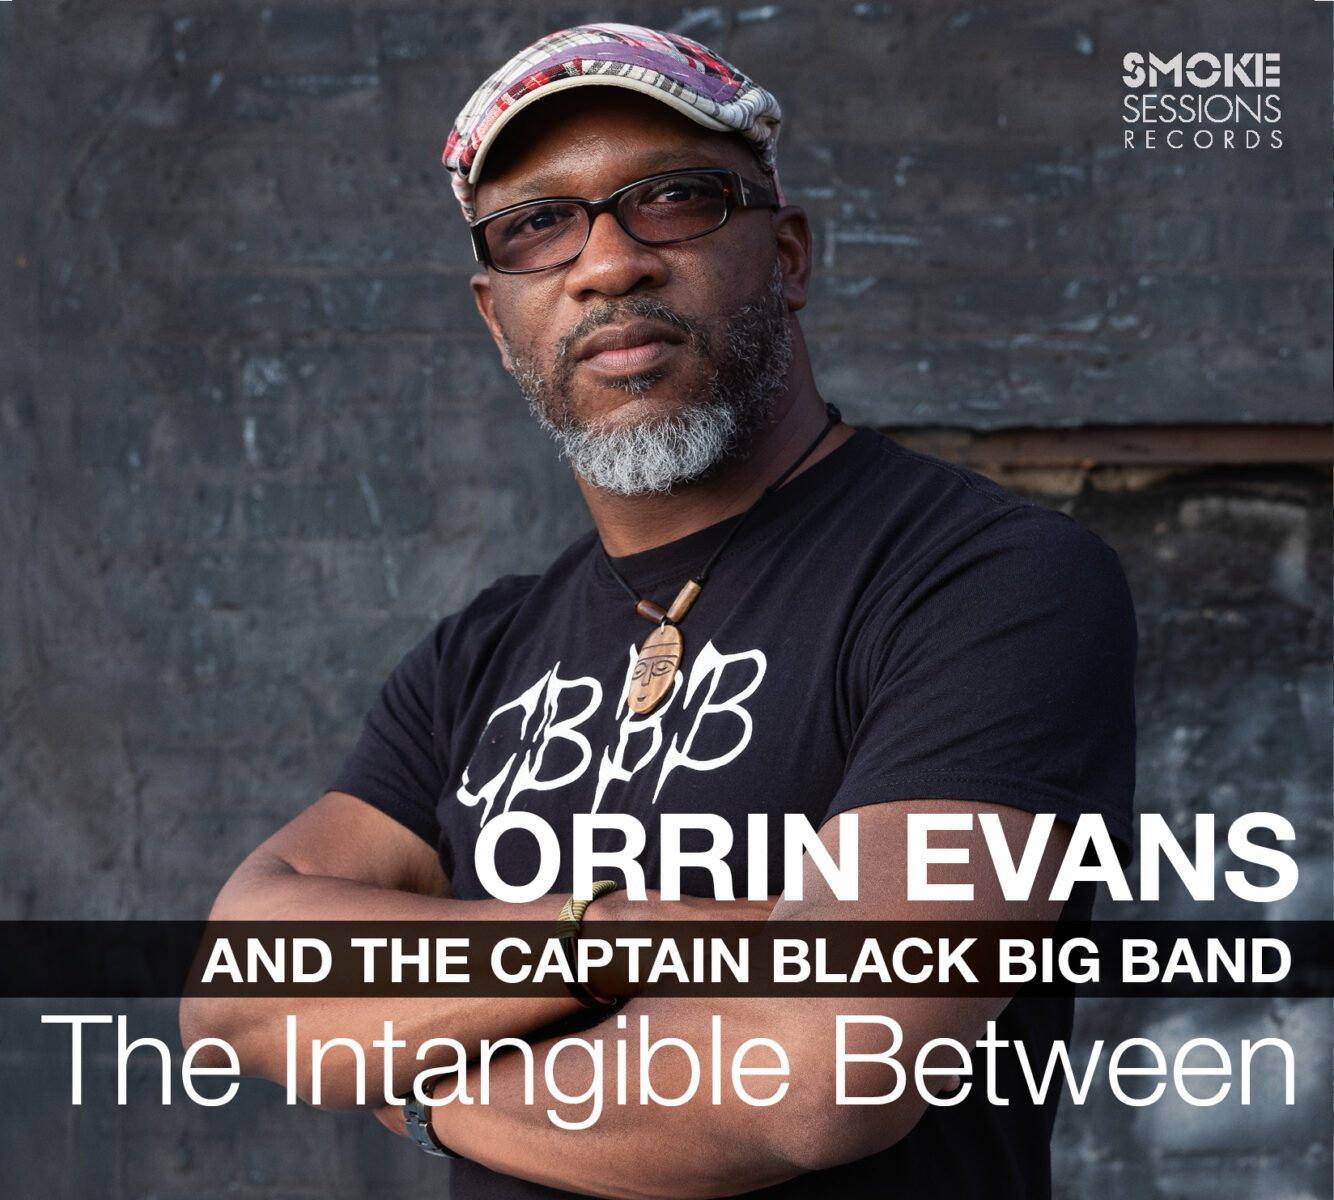 Orrin Evans CBBB THE INTANGIBLE BETWEEN_Cover